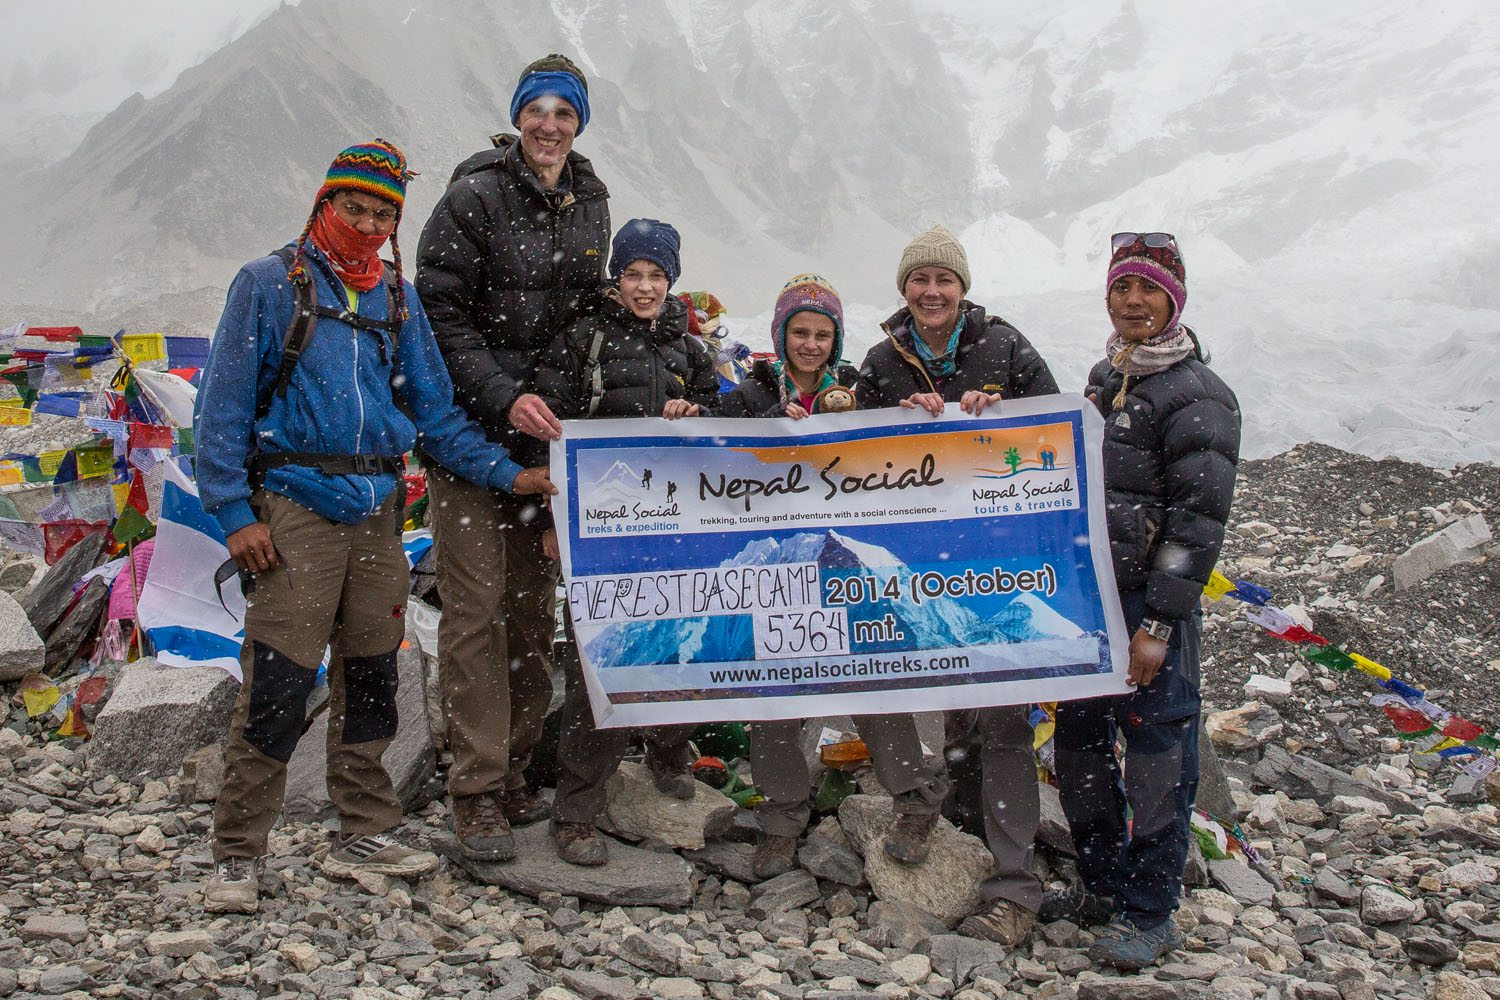 Earth Trekkers at Everest Base Camp